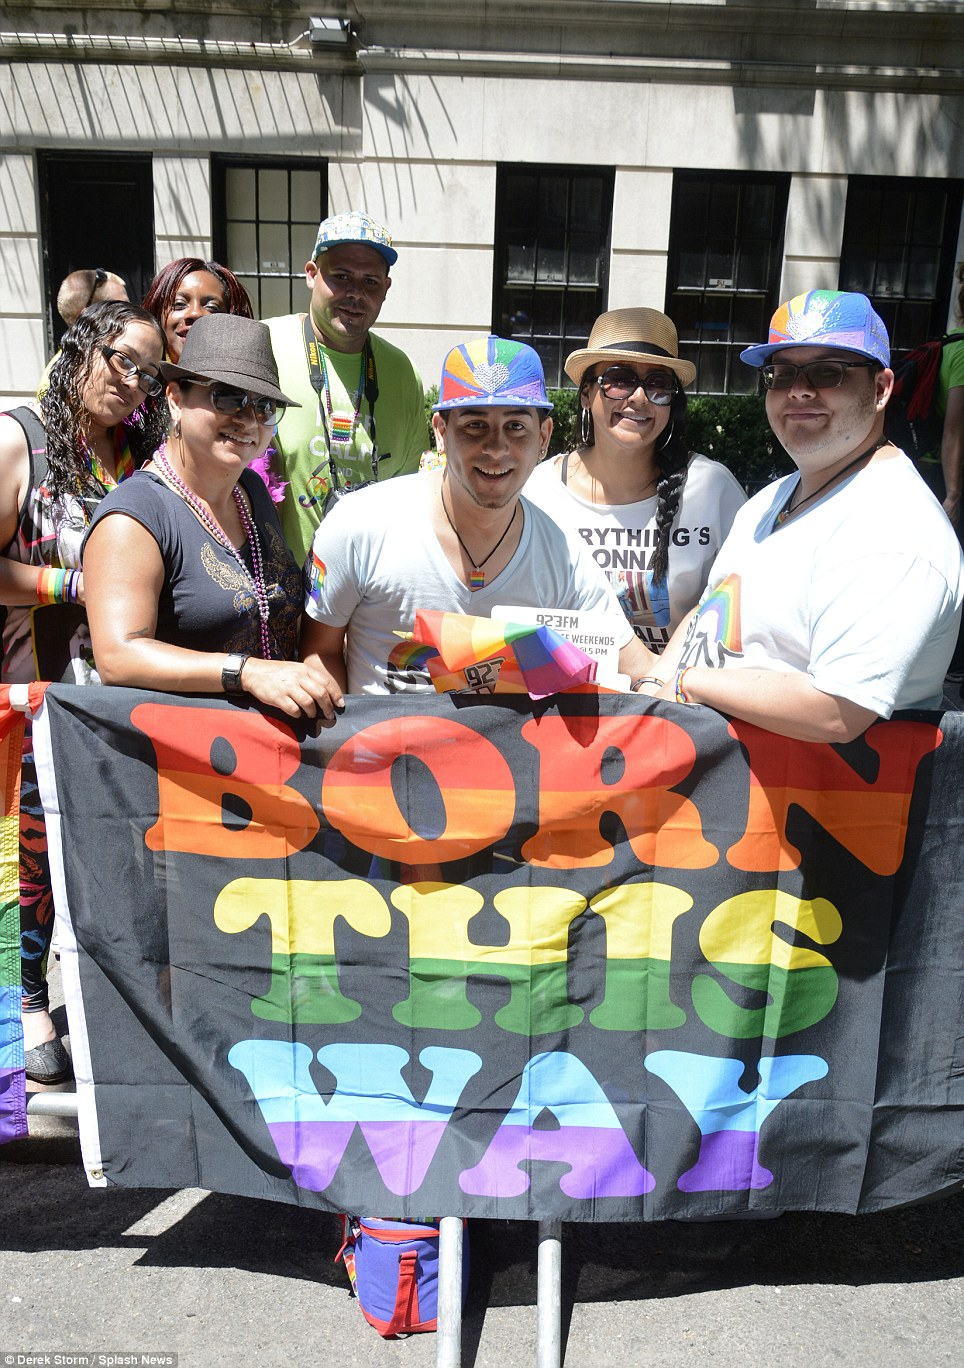 Born this way: Attendees hold a pride flag at the NYC march